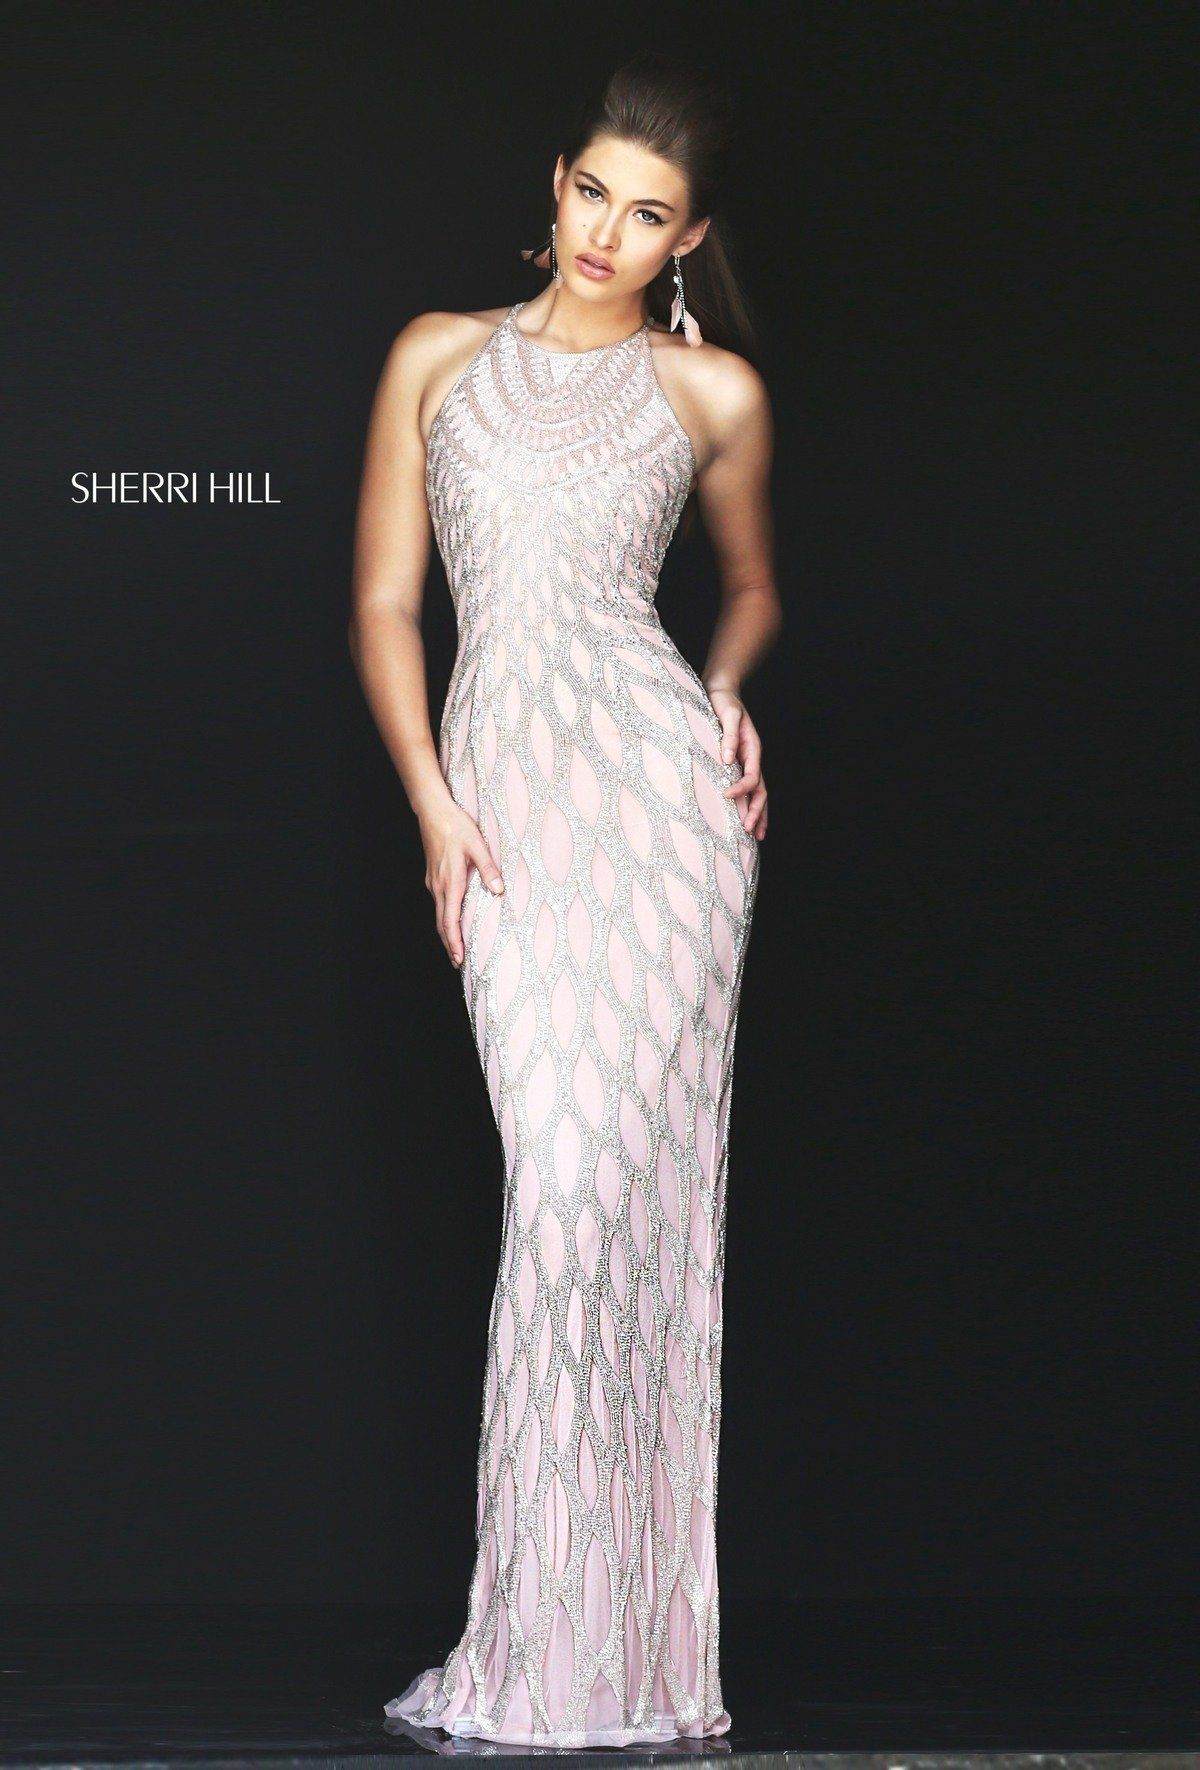 Sherri hill style all things prom in pinterest prom